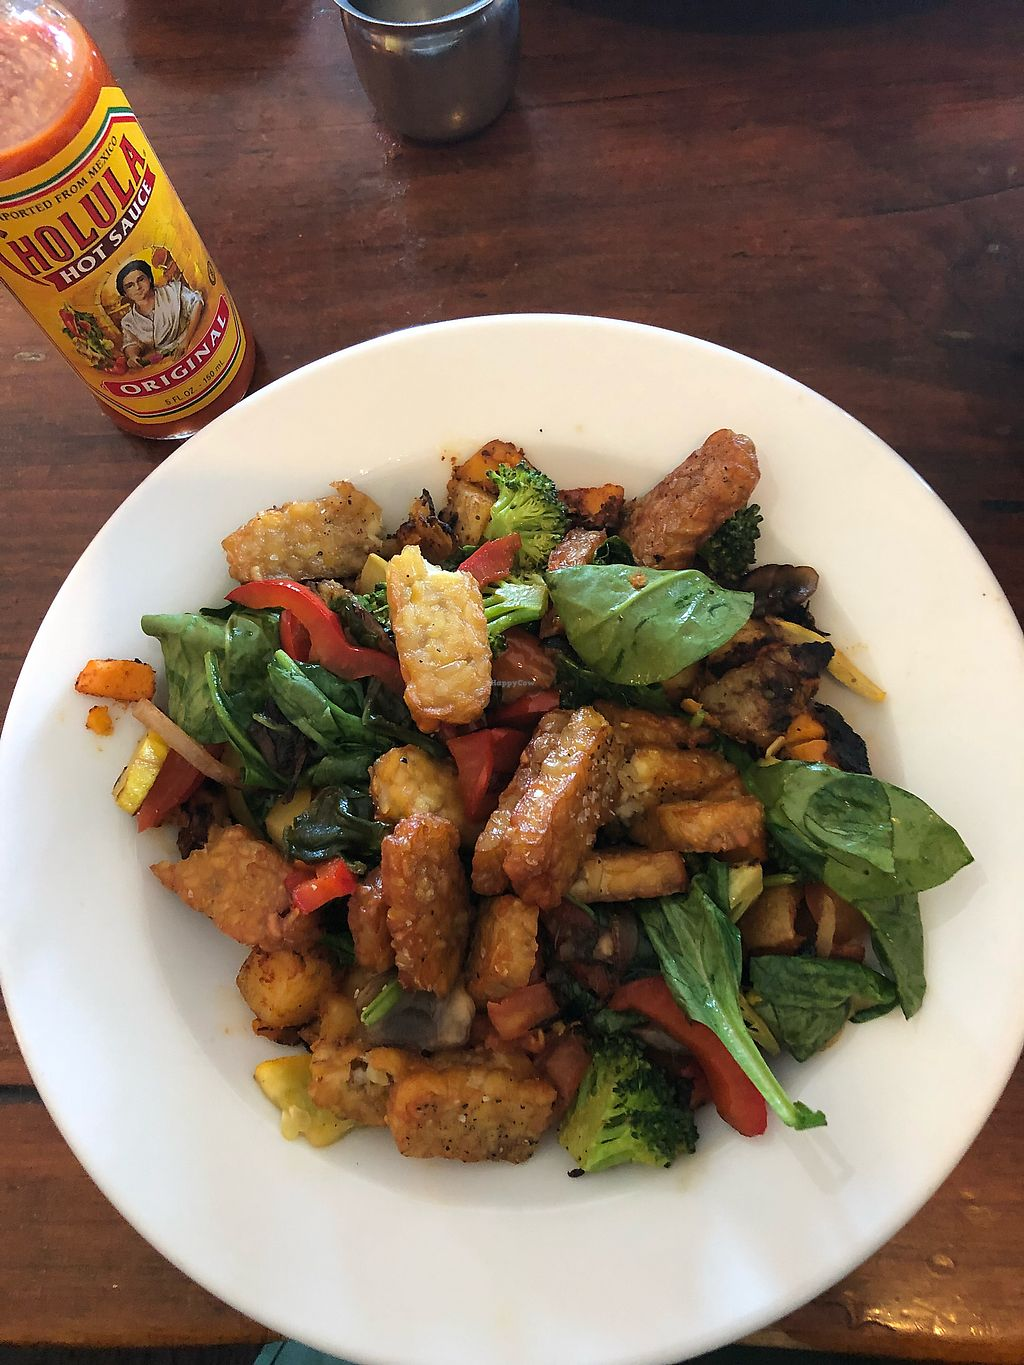 """Photo of Bayside American Cafe  by <a href=""""/members/profile/EmilyR"""">EmilyR</a> <br/>Veggie hash with side of tempeh <br/> April 12, 2018  - <a href='/contact/abuse/image/70062/384723'>Report</a>"""